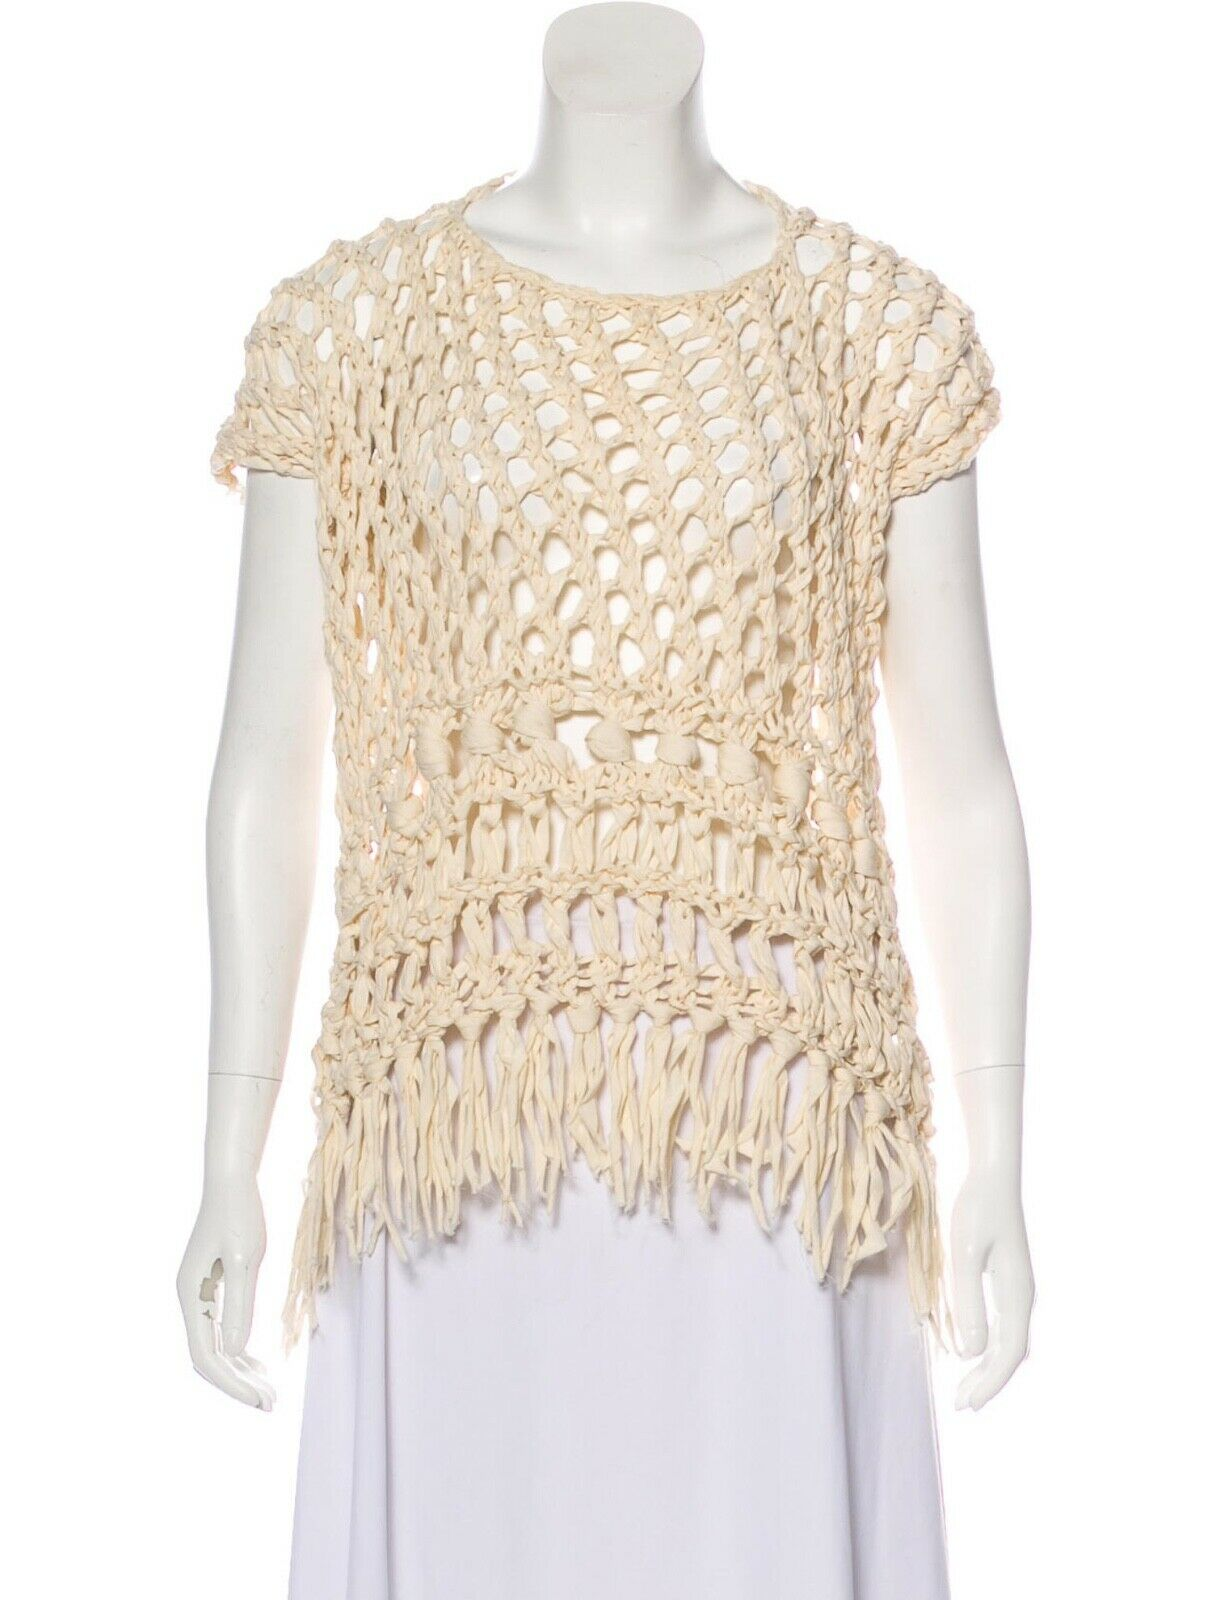 JUNYA WATANABE COMME DES GARÇONS Knot Accent Woven Tunic Top S Cotton Japan Crem